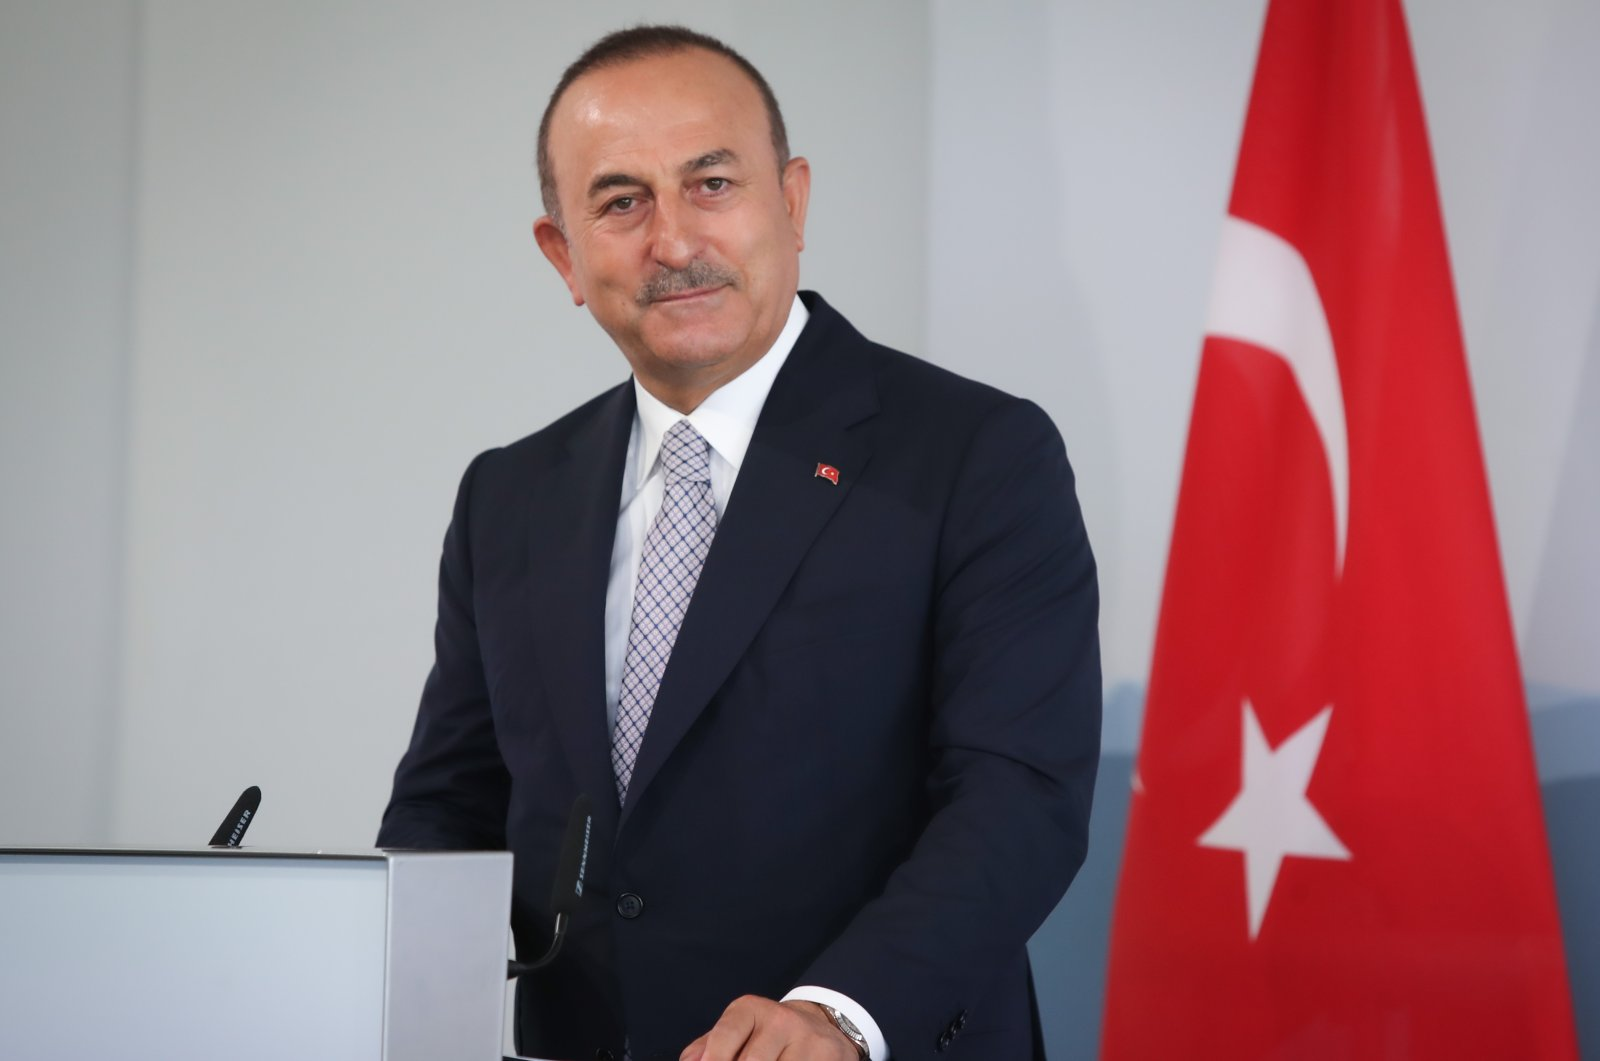 Turkish Foreign Minister Mevlüt Çavuşoğlu addresses the media during a joint press conference with Swiss Federal Councilor Ignazio Cassis as part of an official visit in Bern, Switzerland, Friday, Aug. 14, 2020. (AA Photo)